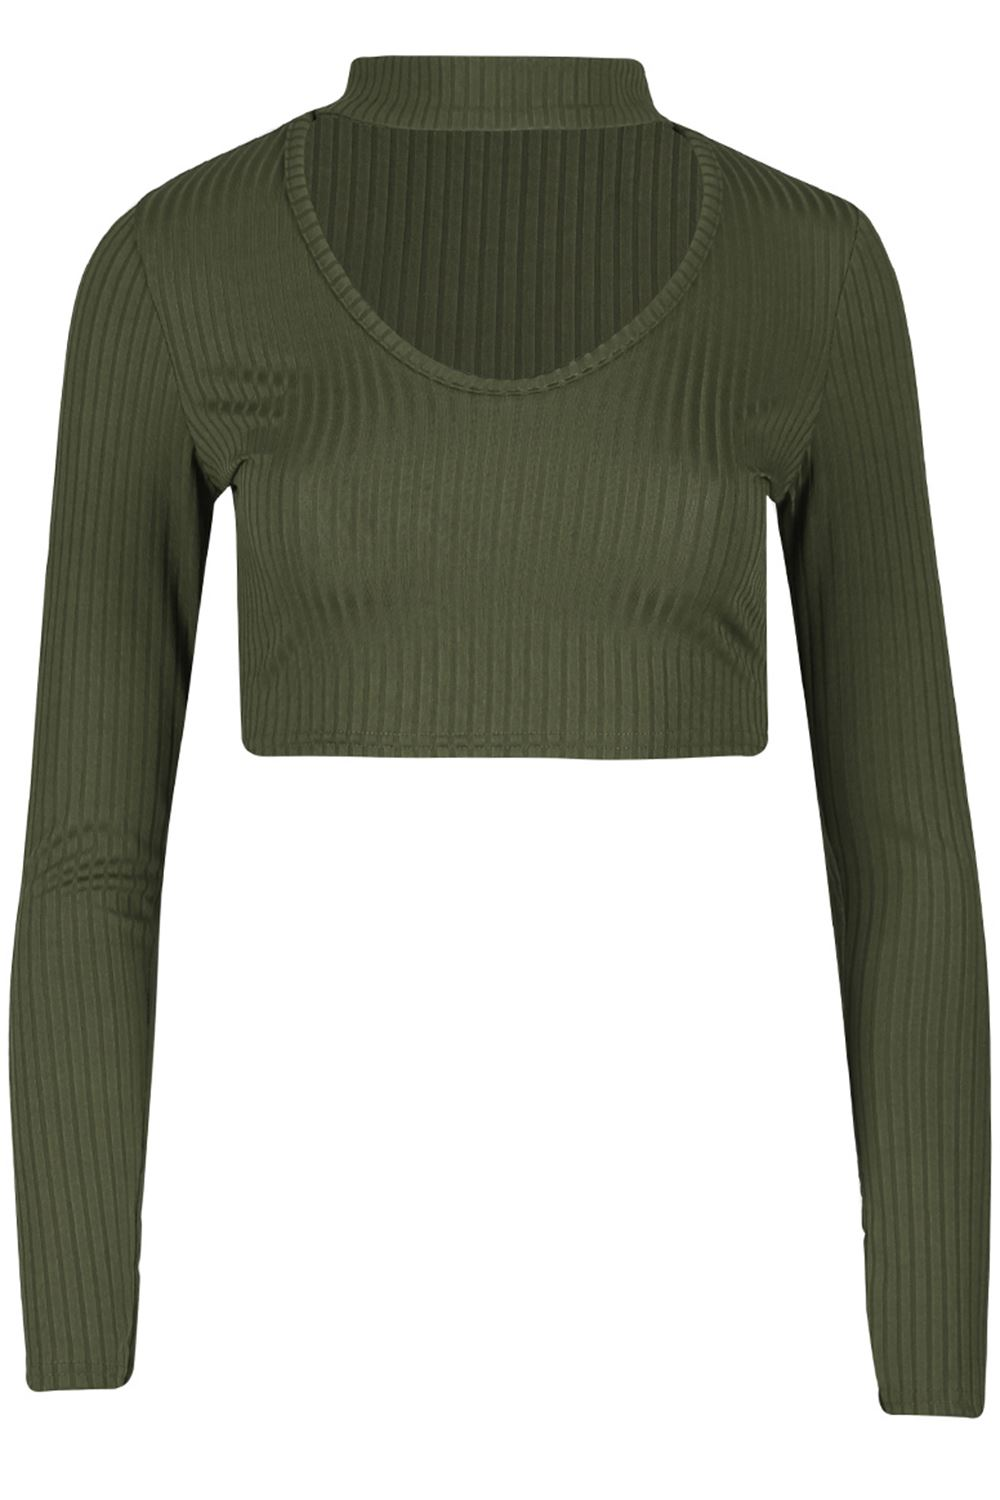 62ee14f67deca Details about Womens Ribbed Choker Neck Keyhole V Cut Out Ladies Pullover Long  Sleeve Crop Top